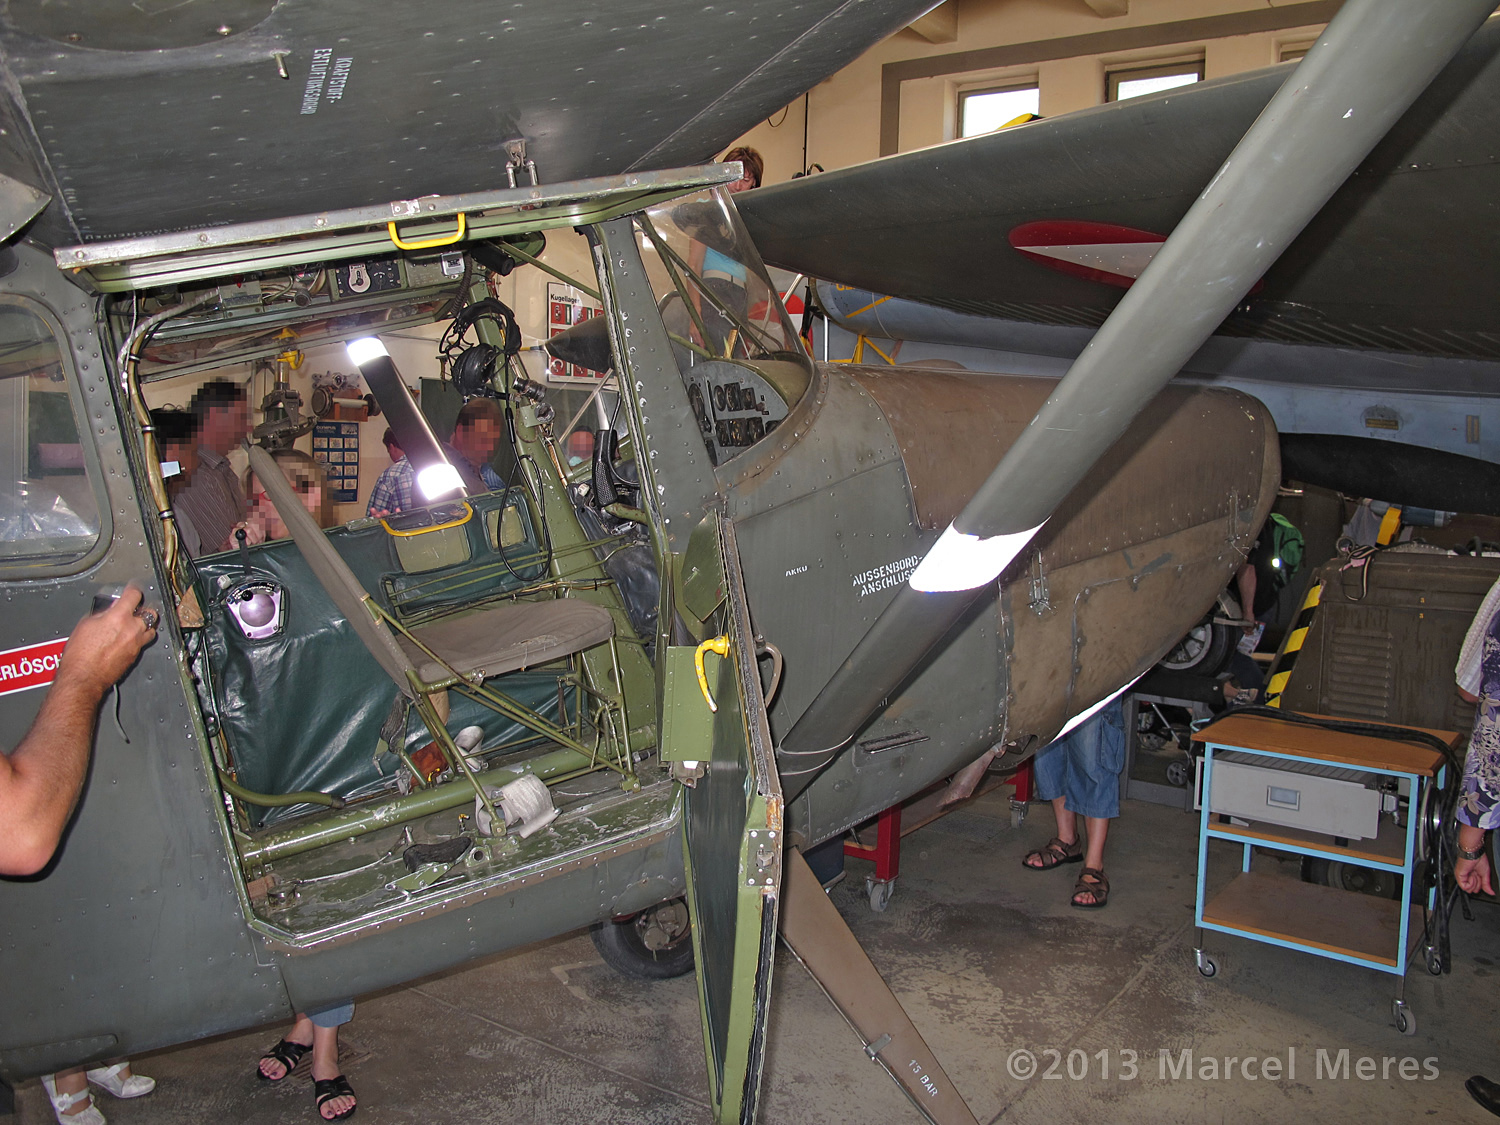 Cessna O-1 / L-19 Bird Dog, Austrian army, Cockpit door opened